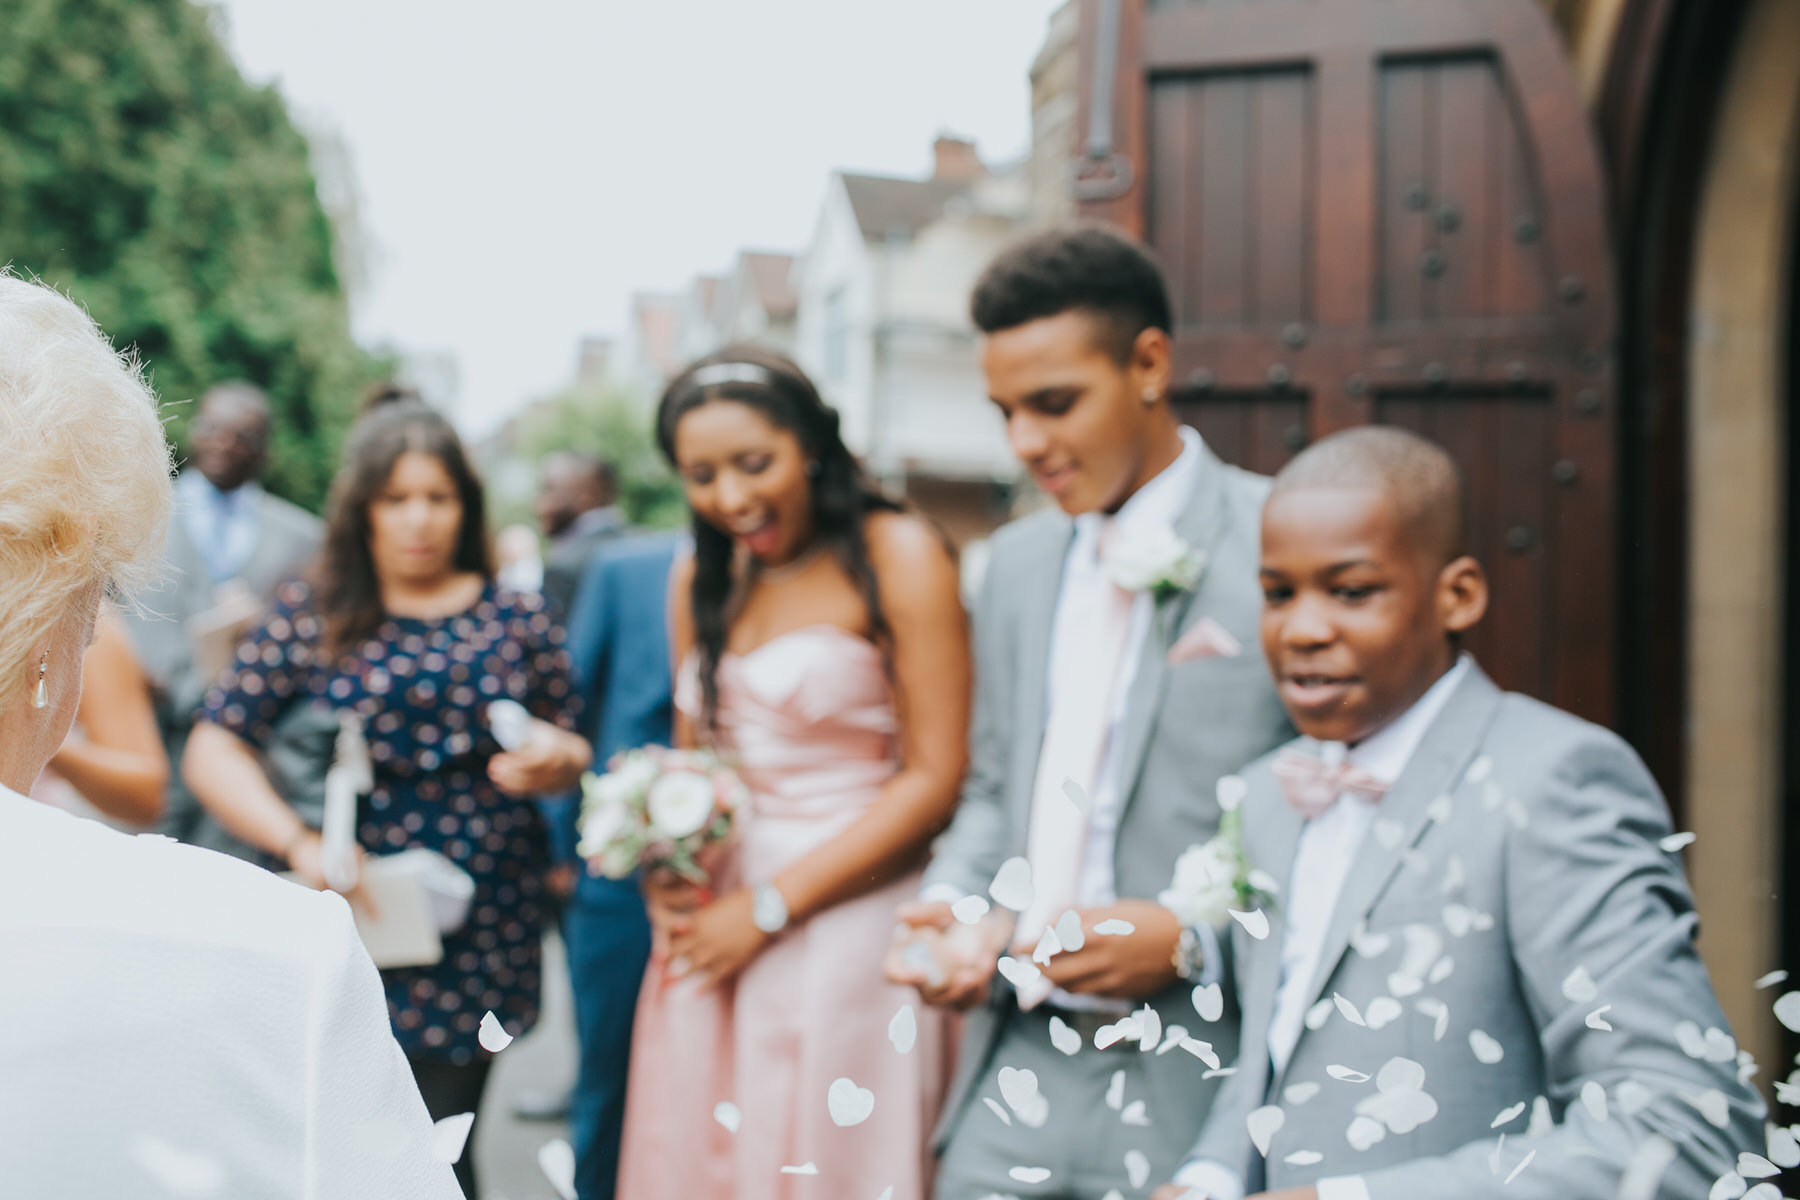 109 out of focus blurry wedding photo creamy pastel hues.jpg